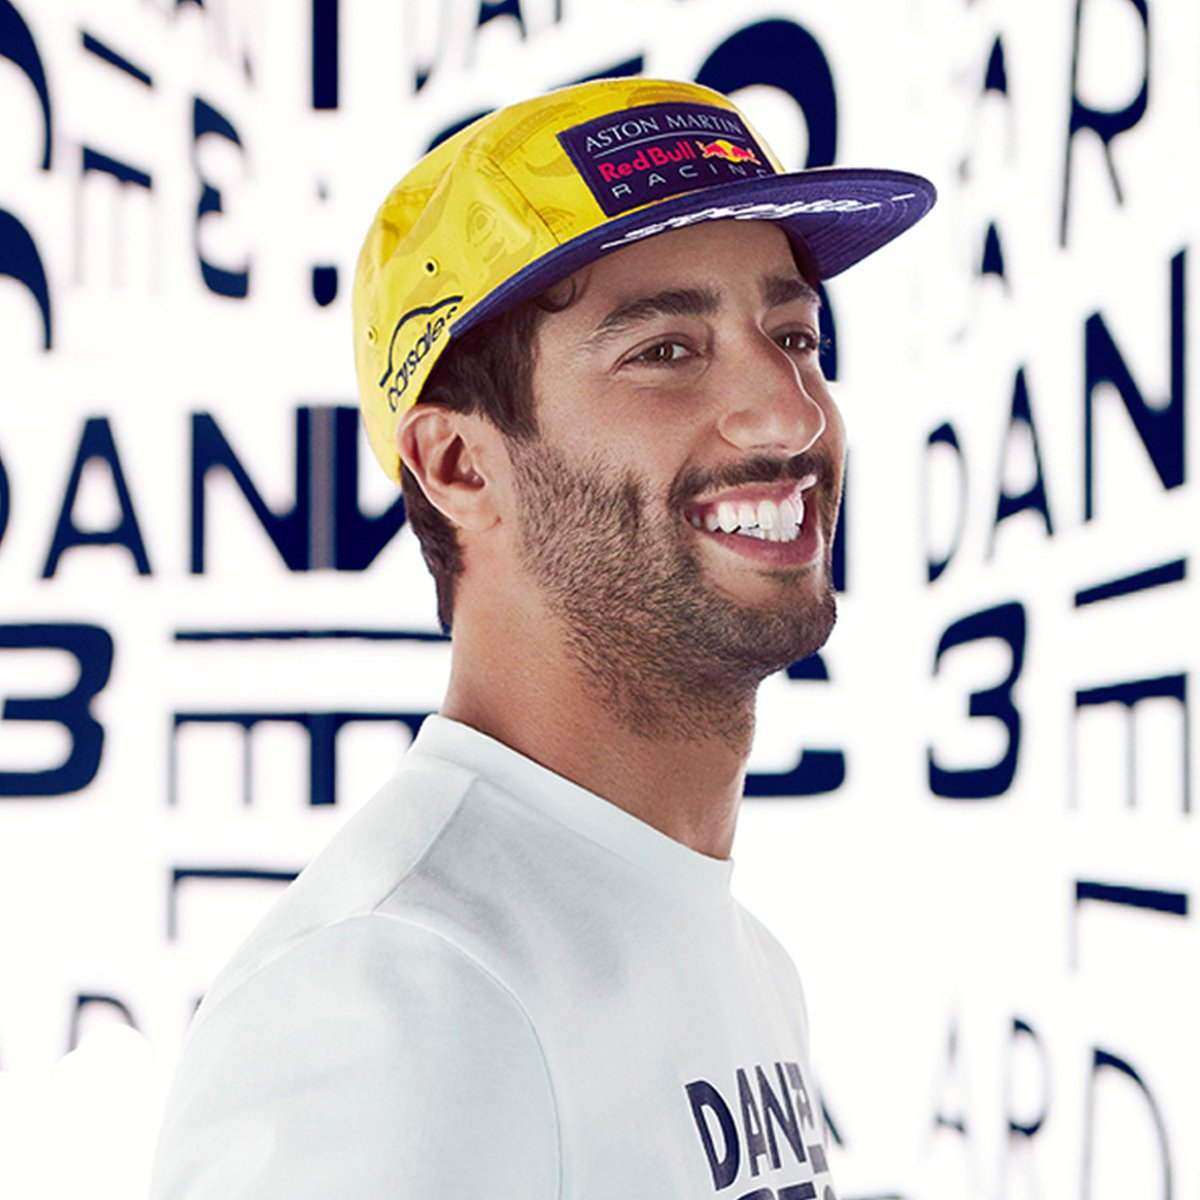 Aston Martin Red Bull Racing On Twitter Get Set For The Ausgp In Style Gear Up Like Danielricciardo With This Special Edition Pumamotorsport Cap Https T Co Ffmjol0tvb Fastertogether Https T Co 2e3fdo6isp